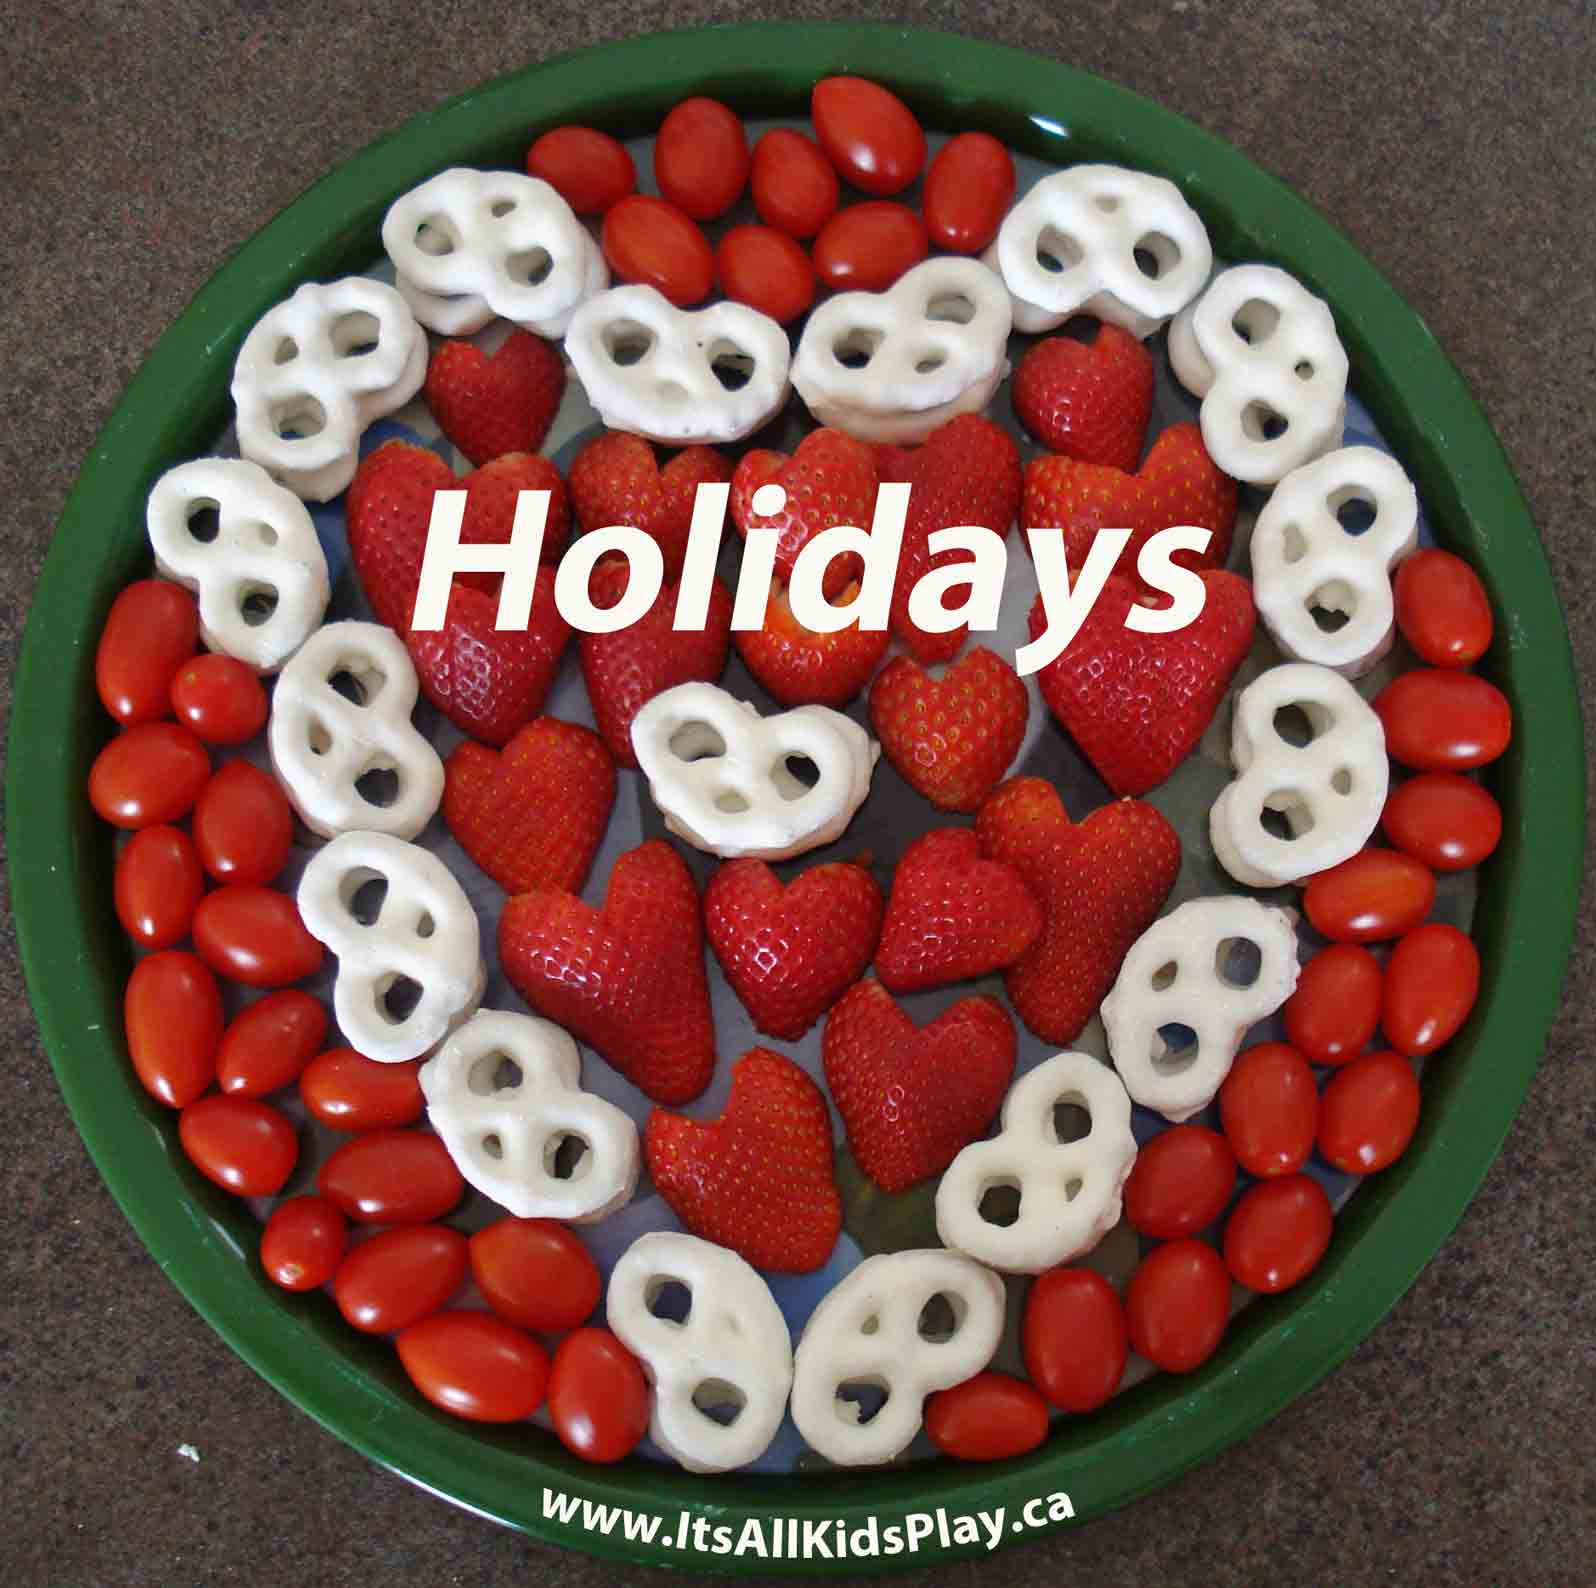 Kids holiday activities and crafts